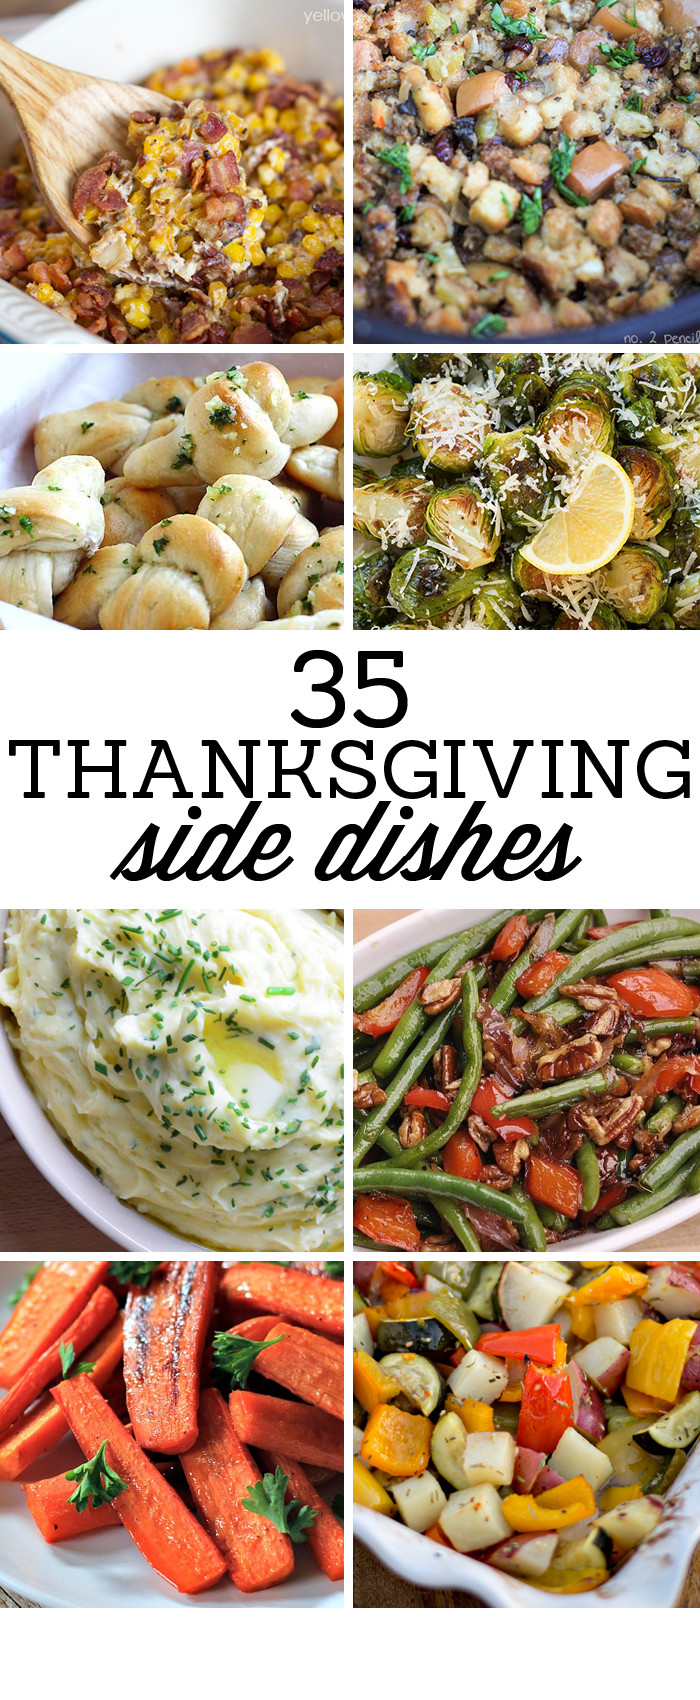 Thanksgiving Dinner Side Dishes  35 Side Dishes for Christmas Dinner Yellow Bliss Road